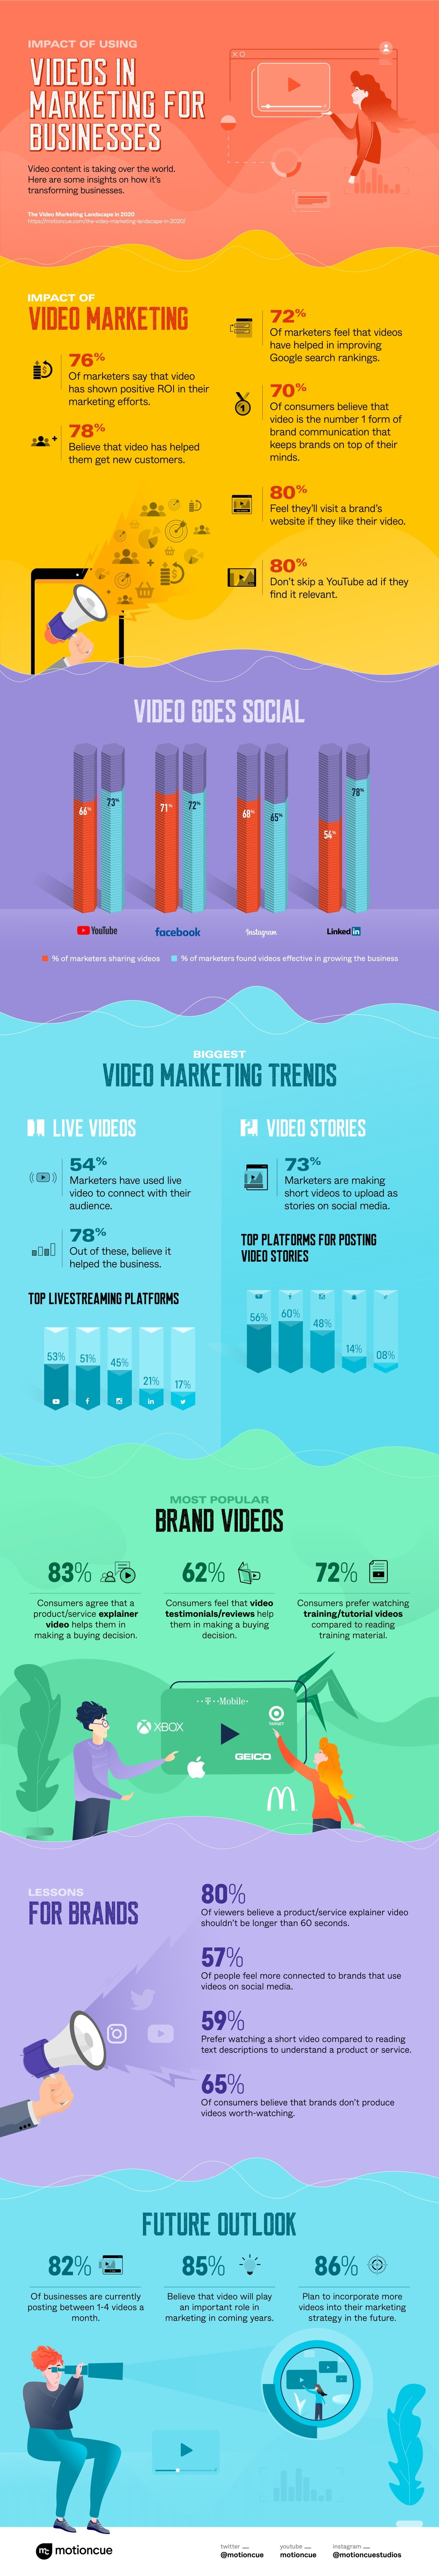 Impact of using videos in marketing for businesses